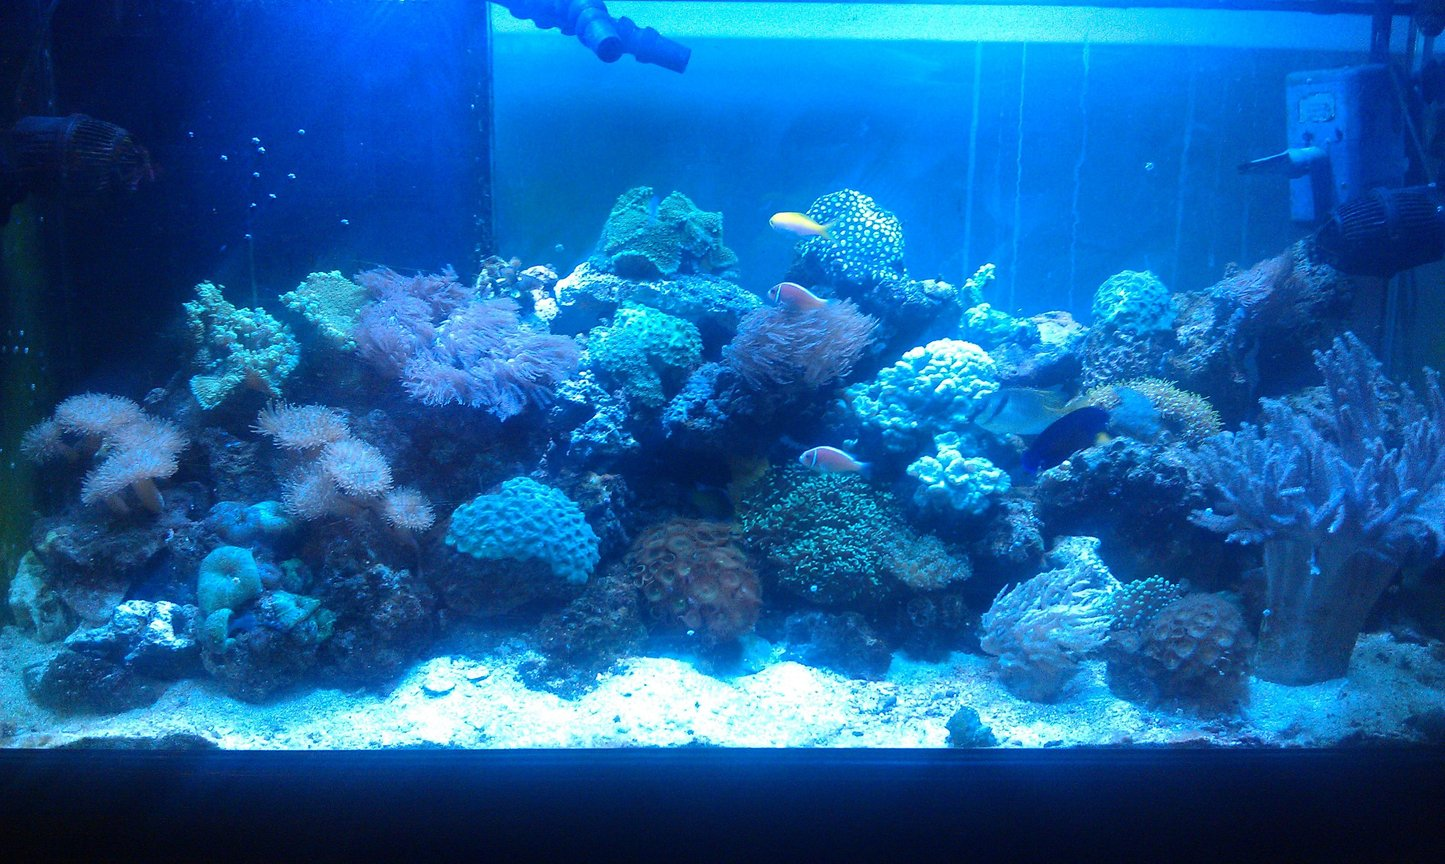 90 gallons reef tank (mostly live coral and fish) - Full frontal picture.